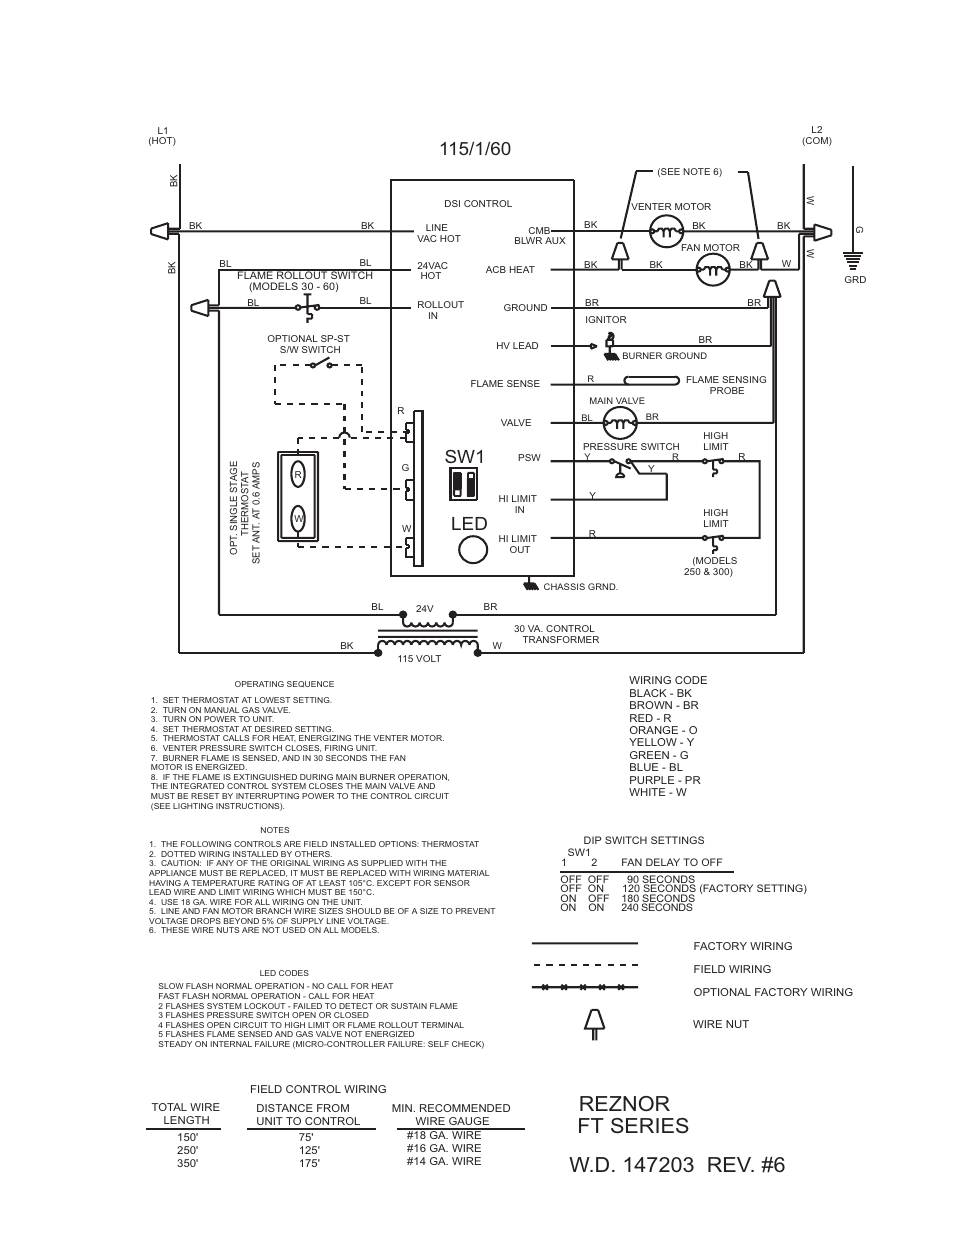 reznor ft unit installation manual page13?resize\\\=665%2C861 cr285b15 wiring diagram crate wiring diagrams collection  at n-0.co